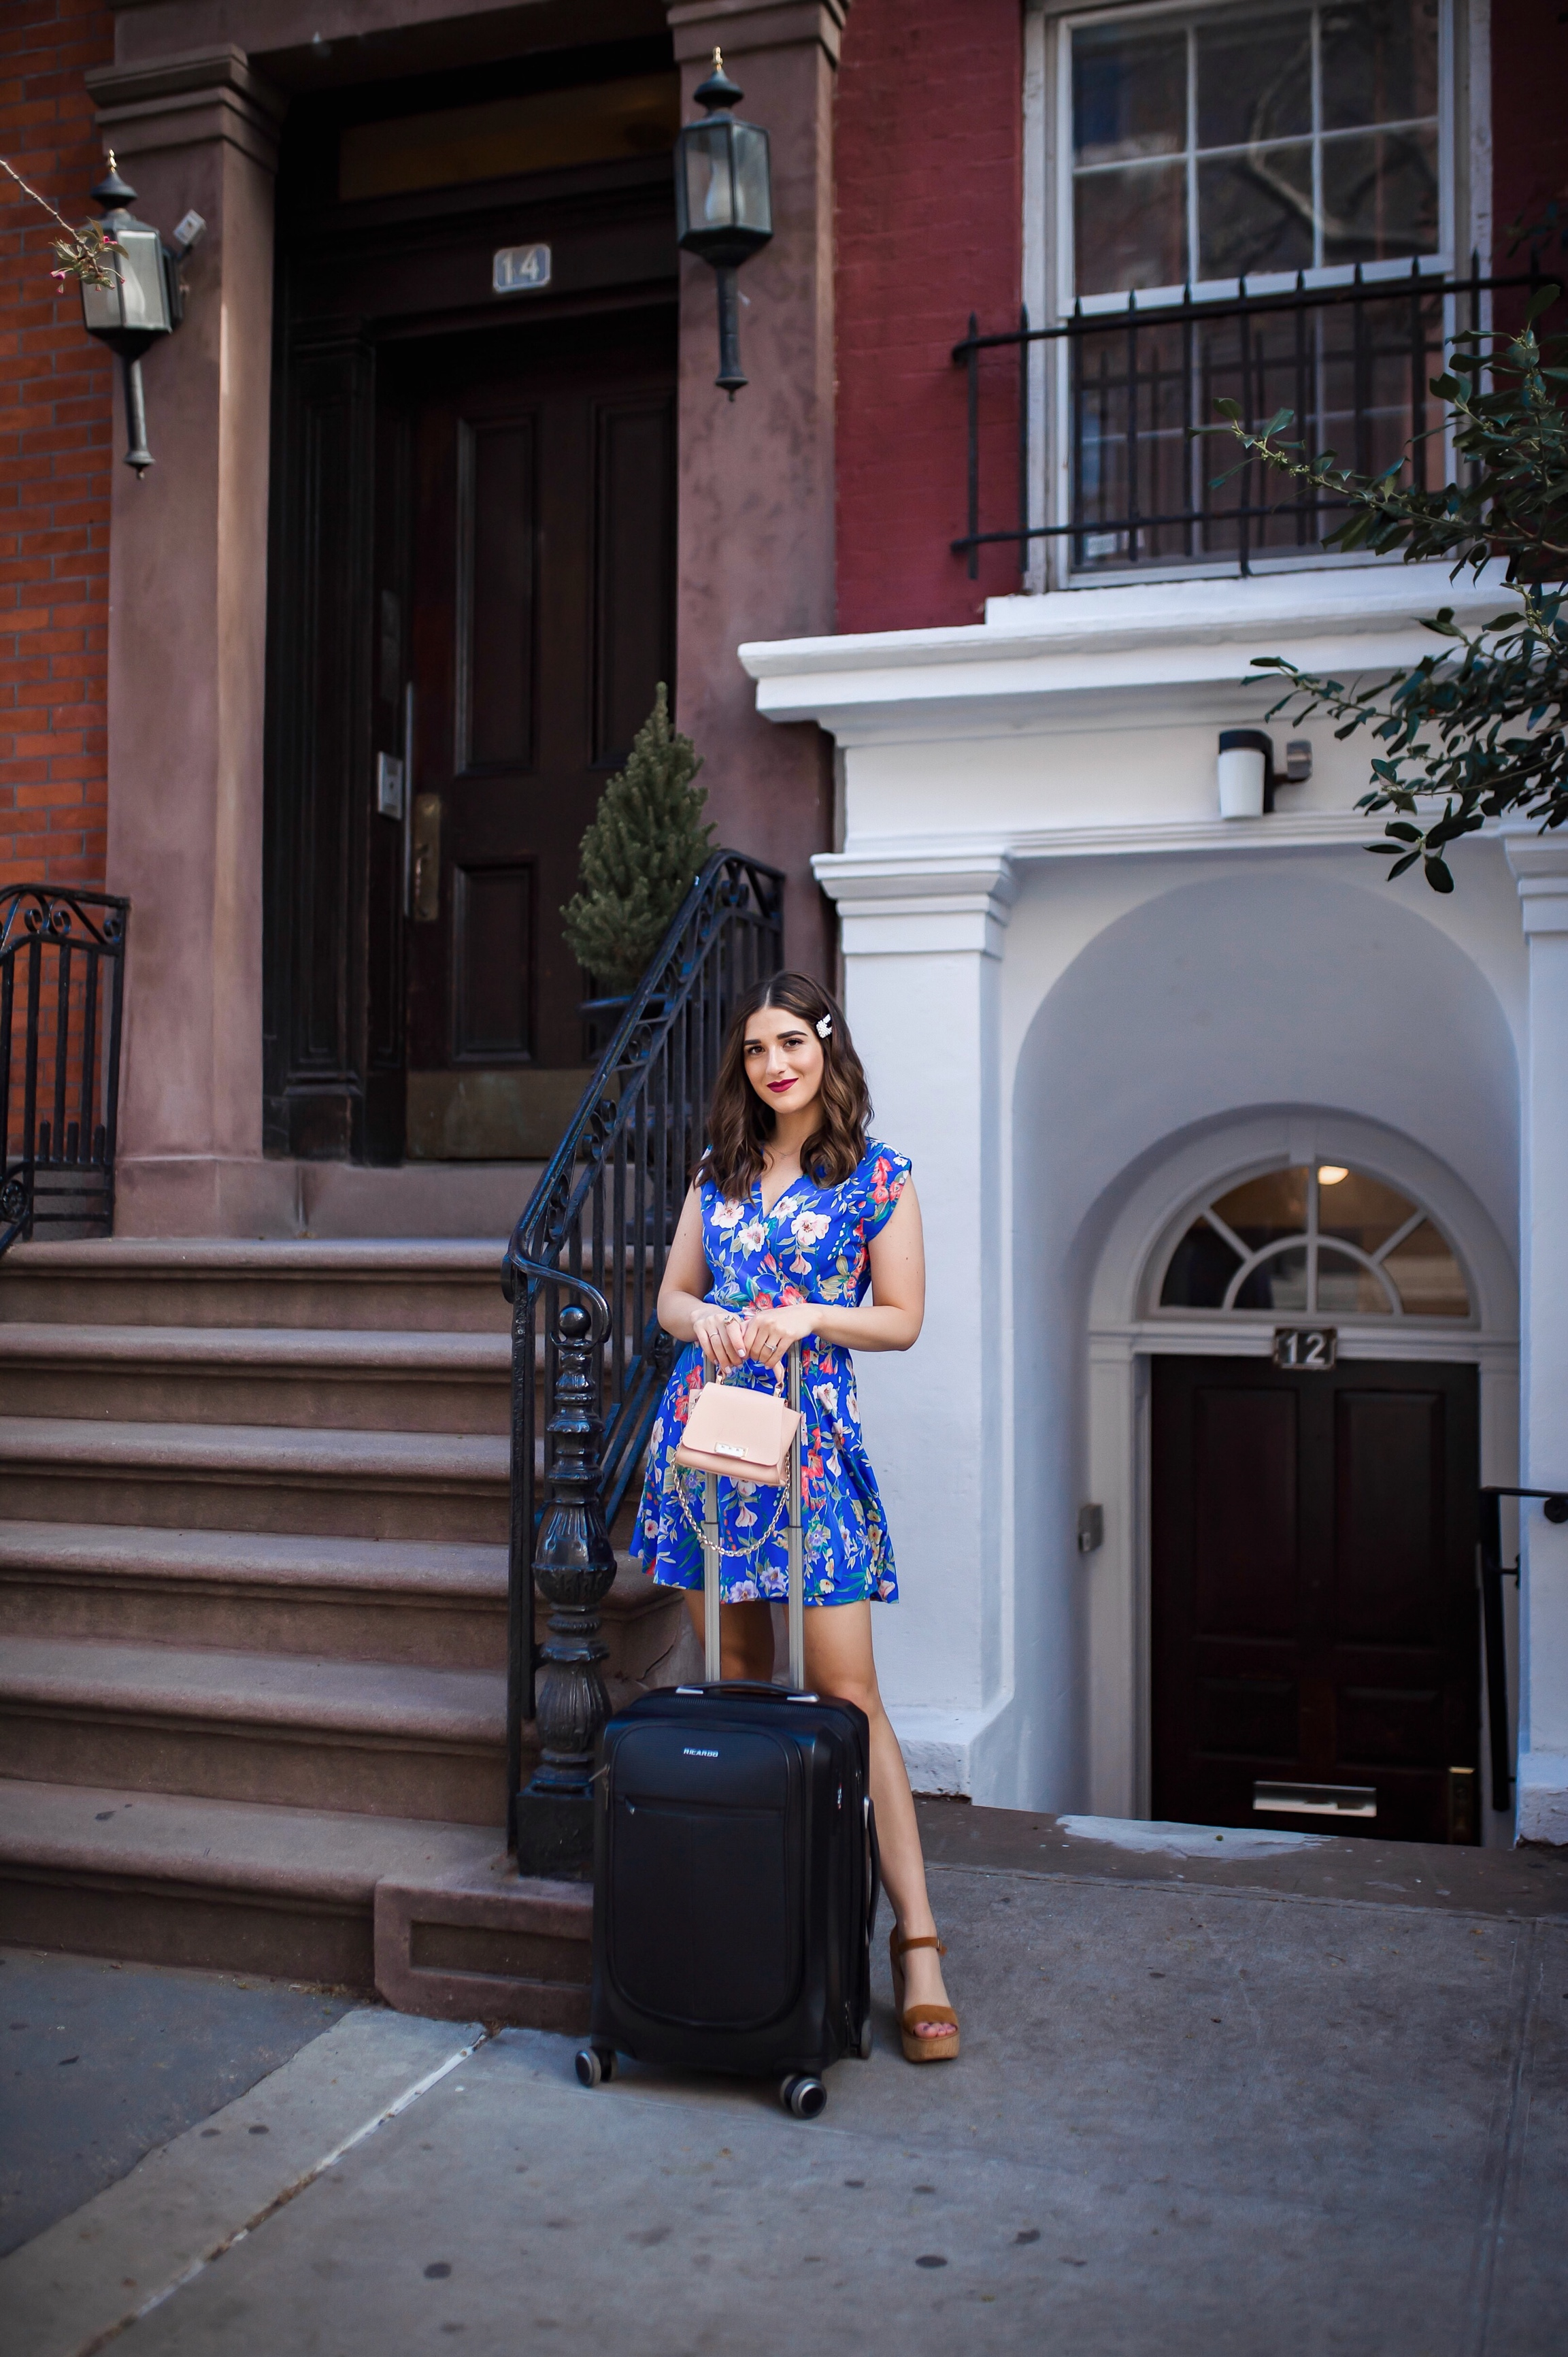 How Ricardo Luggage Keeps Me Organized The Cupertino Collection Esther Santer Fashion Blog NYC Street Style Blogger Outfit OOTD Trendy Shopping Girl Travel Honeymoon Trip Vacation Europe Pack Packing Best Suitcase Front Pocket Hard Case Carry On Black.JPG